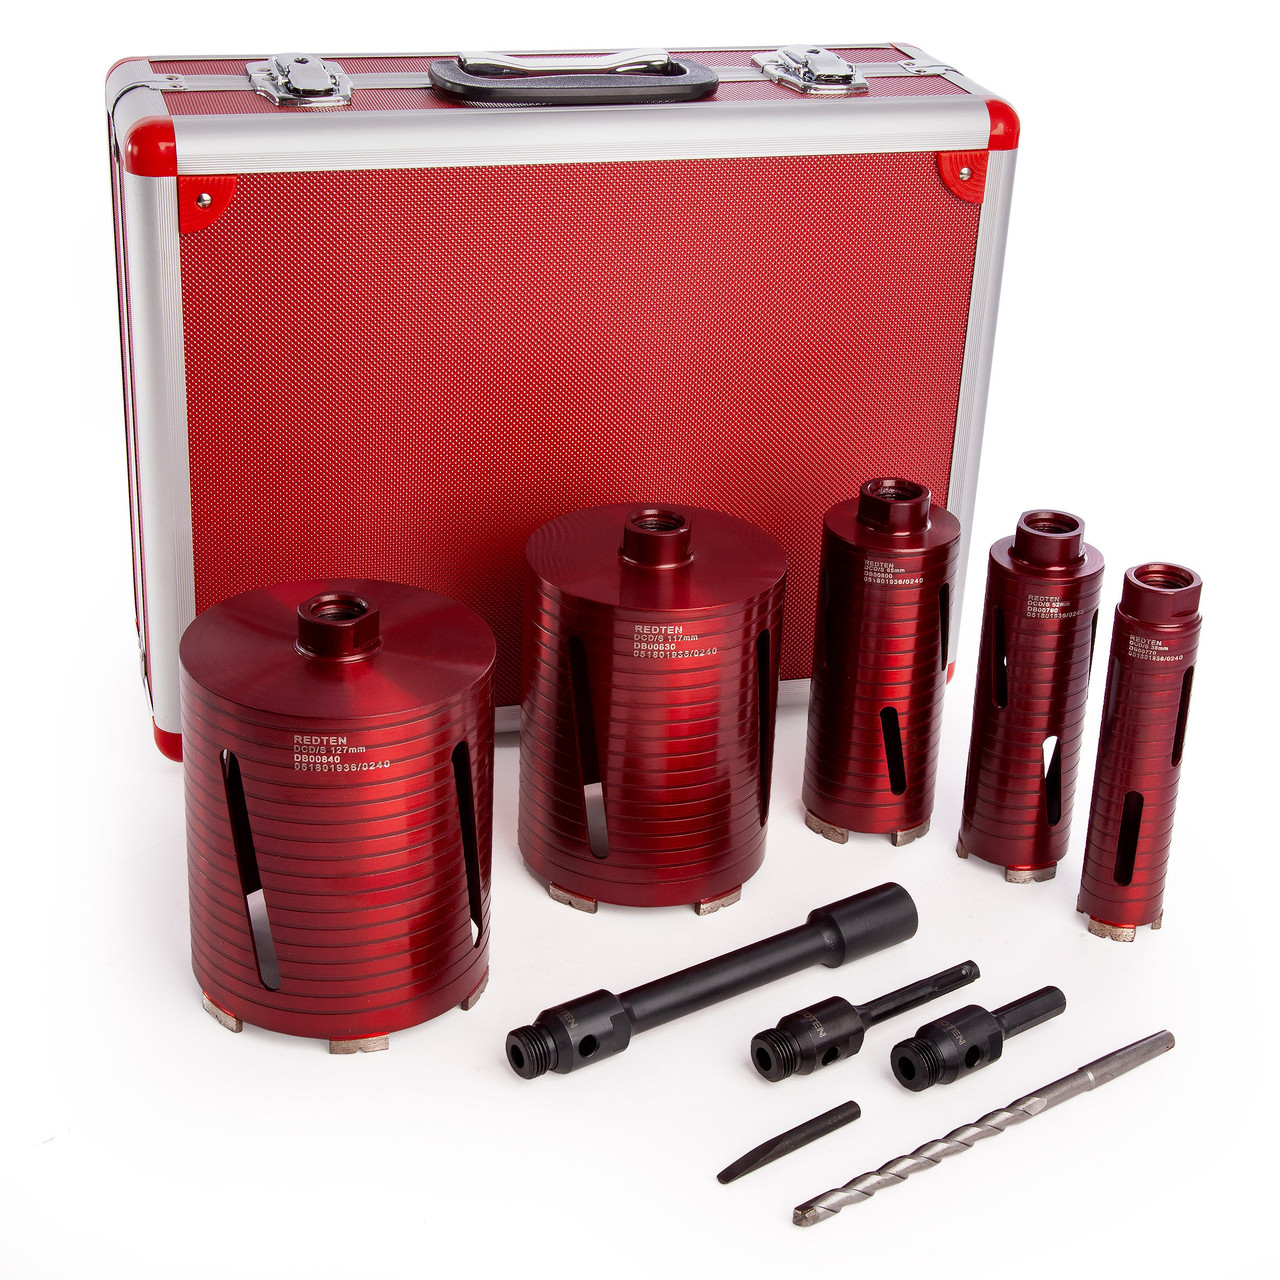 Red Ten Spiral 10 Piece Dry Diamond Core Drill Kit 38mm 52mm 65mm 117mm 127mm